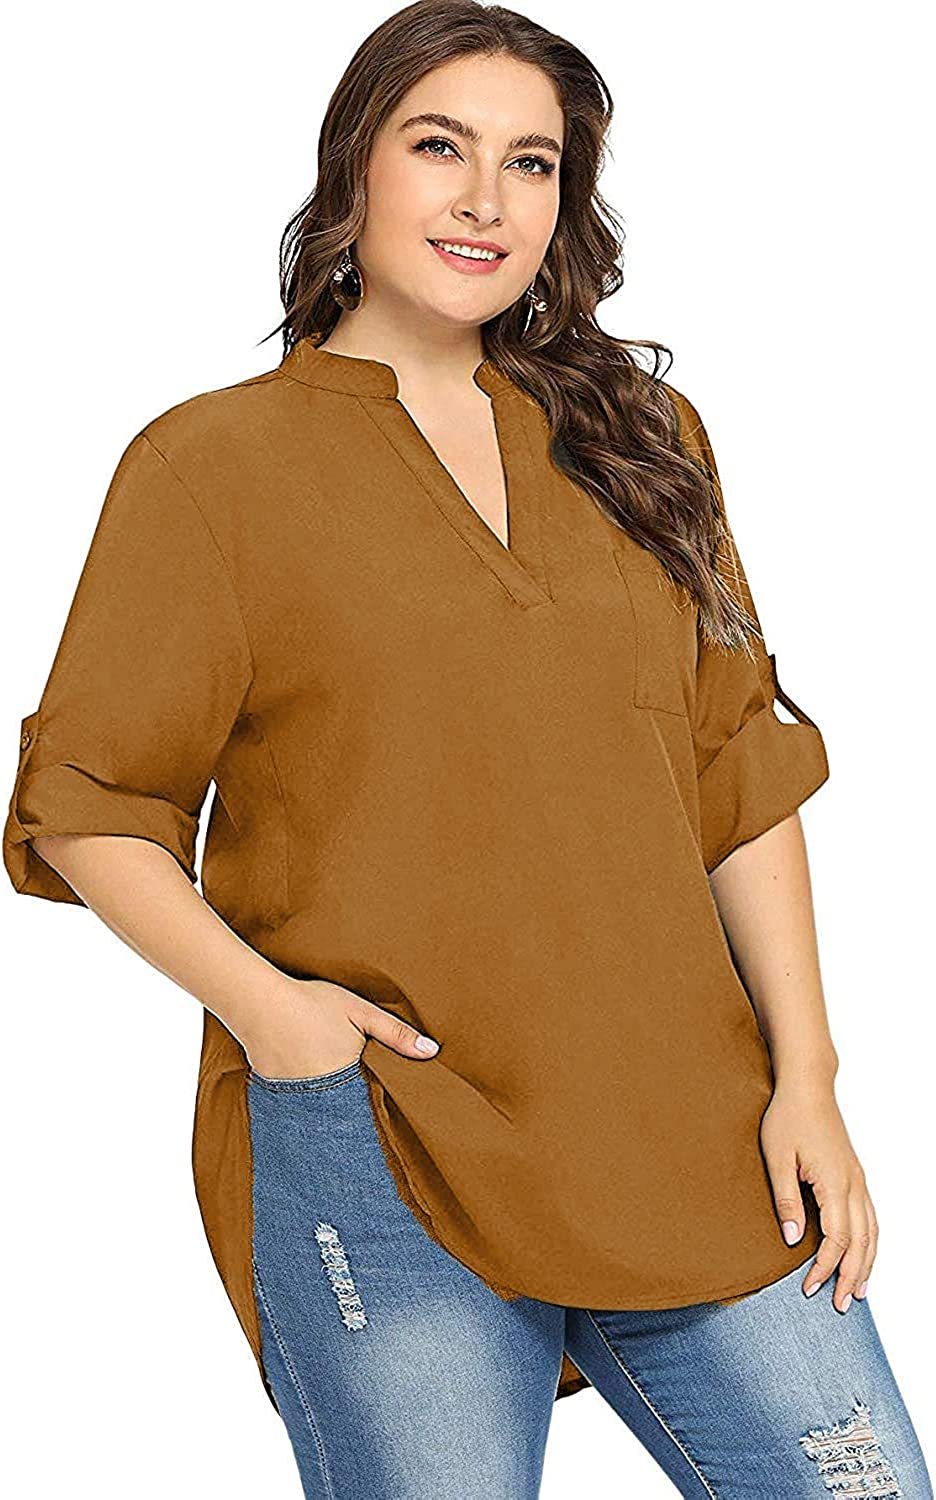 Milumia Womens Plus Size V Neck Rolled Up Long Sleeve High Low Hem Loose Blouse Shirt Top